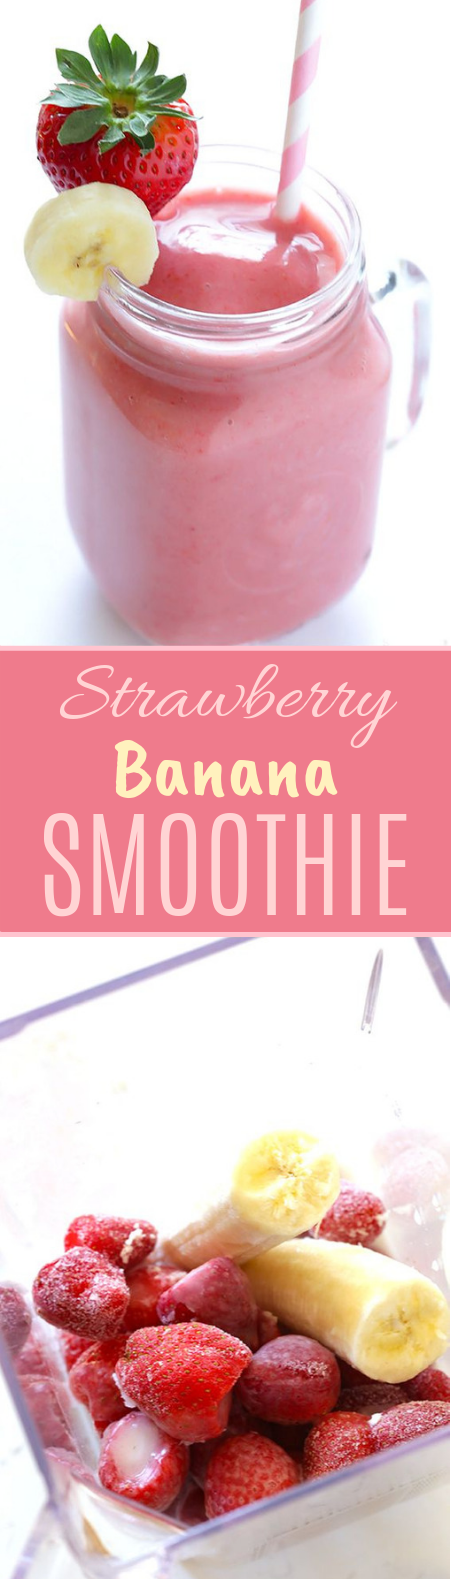 Strawberry Banana Smoothie #healthy #drinks